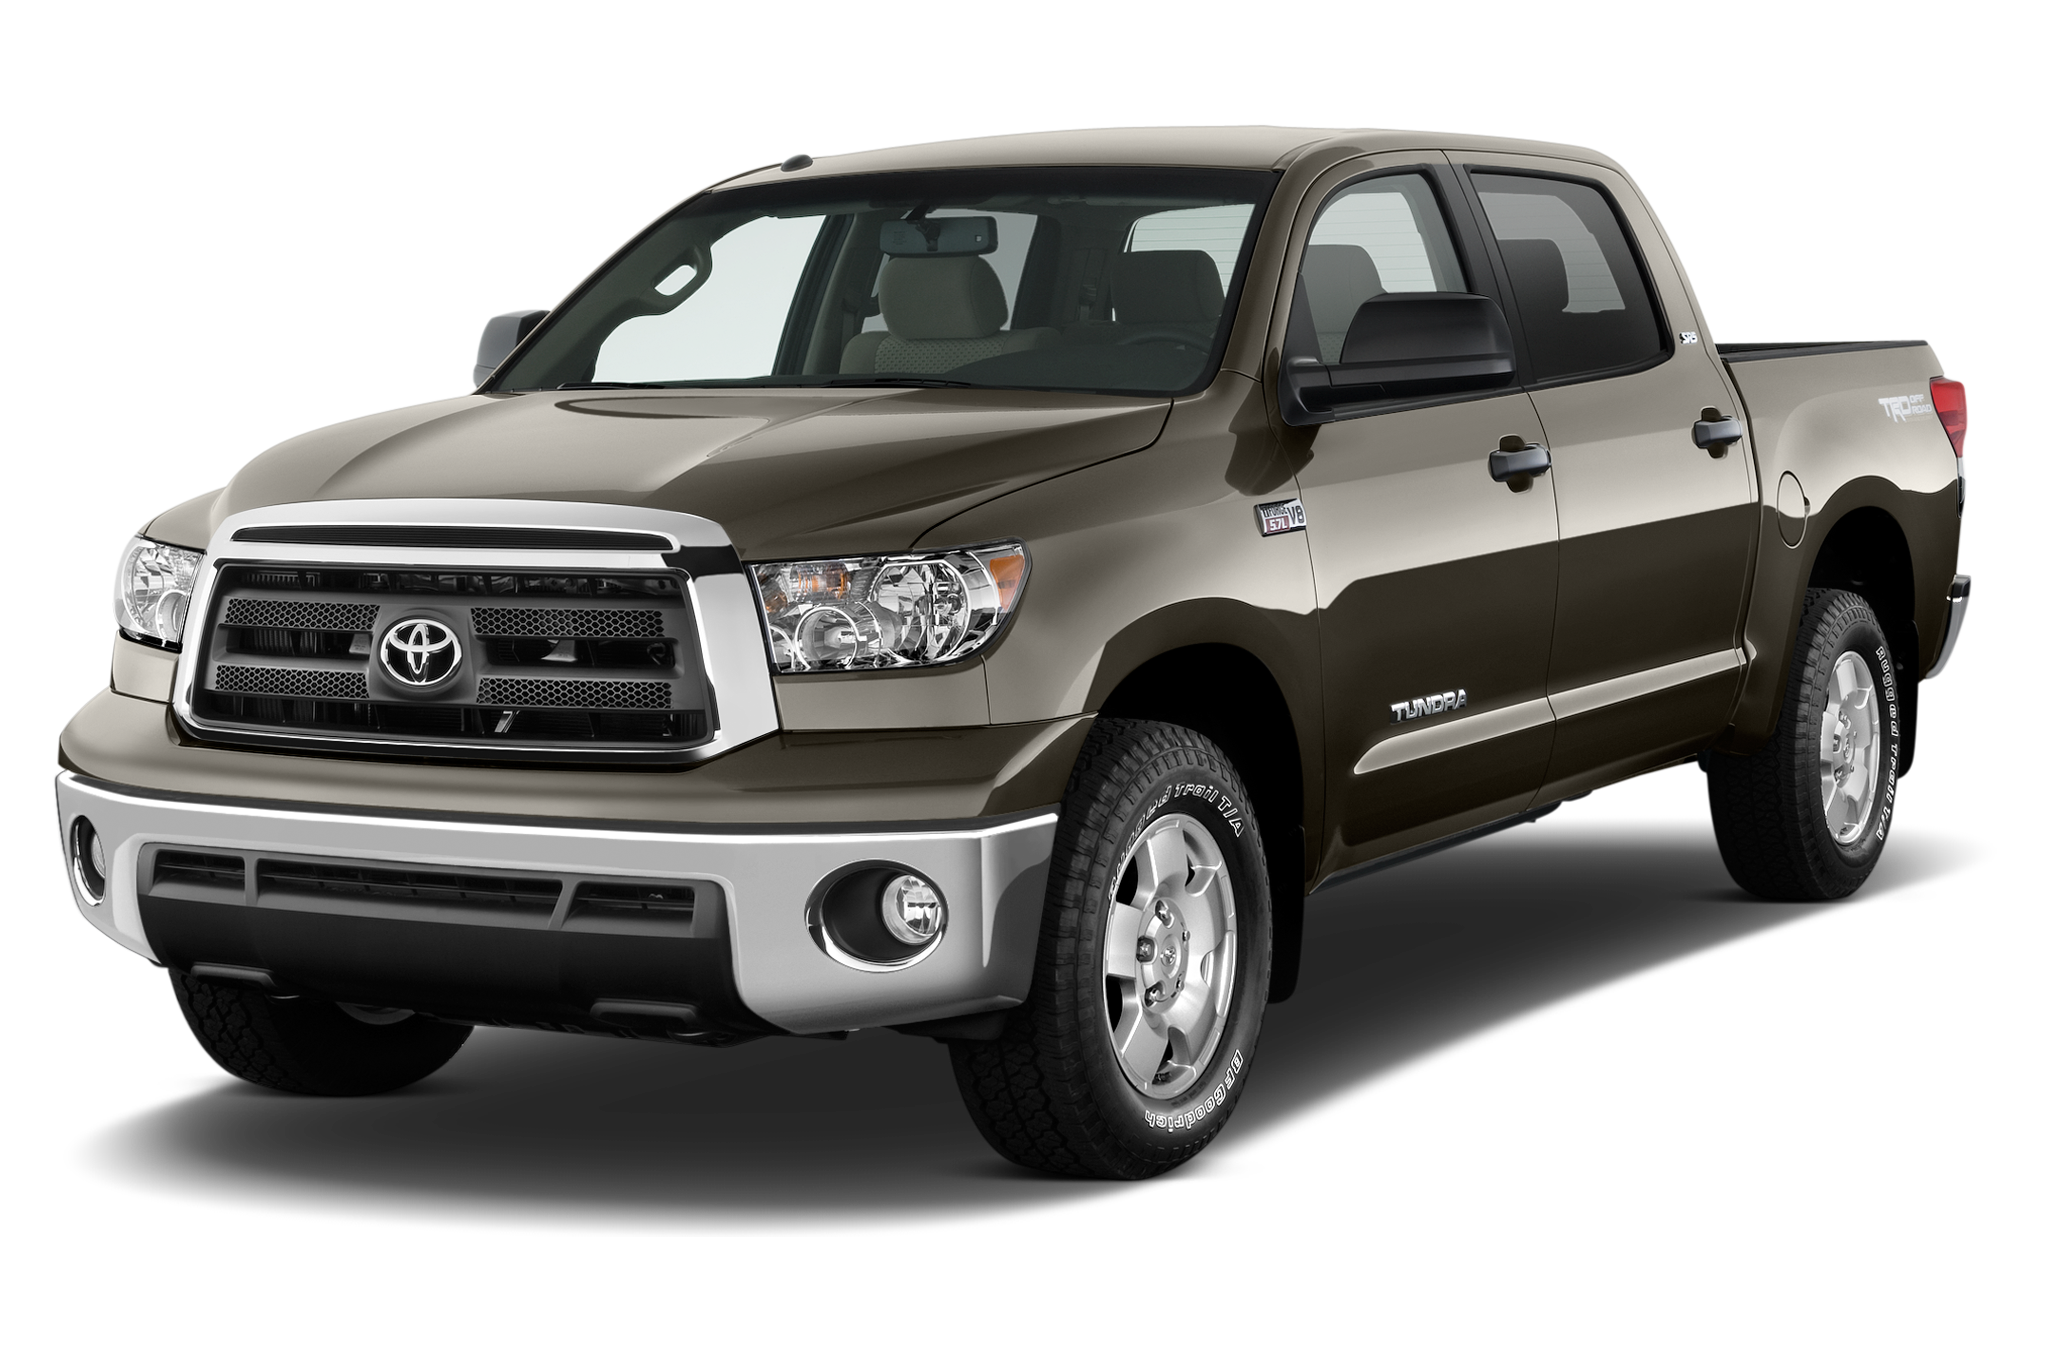 2010 toyota tundra limited 4x4 double cab editor 39 s notebook automobile magazine. Black Bedroom Furniture Sets. Home Design Ideas